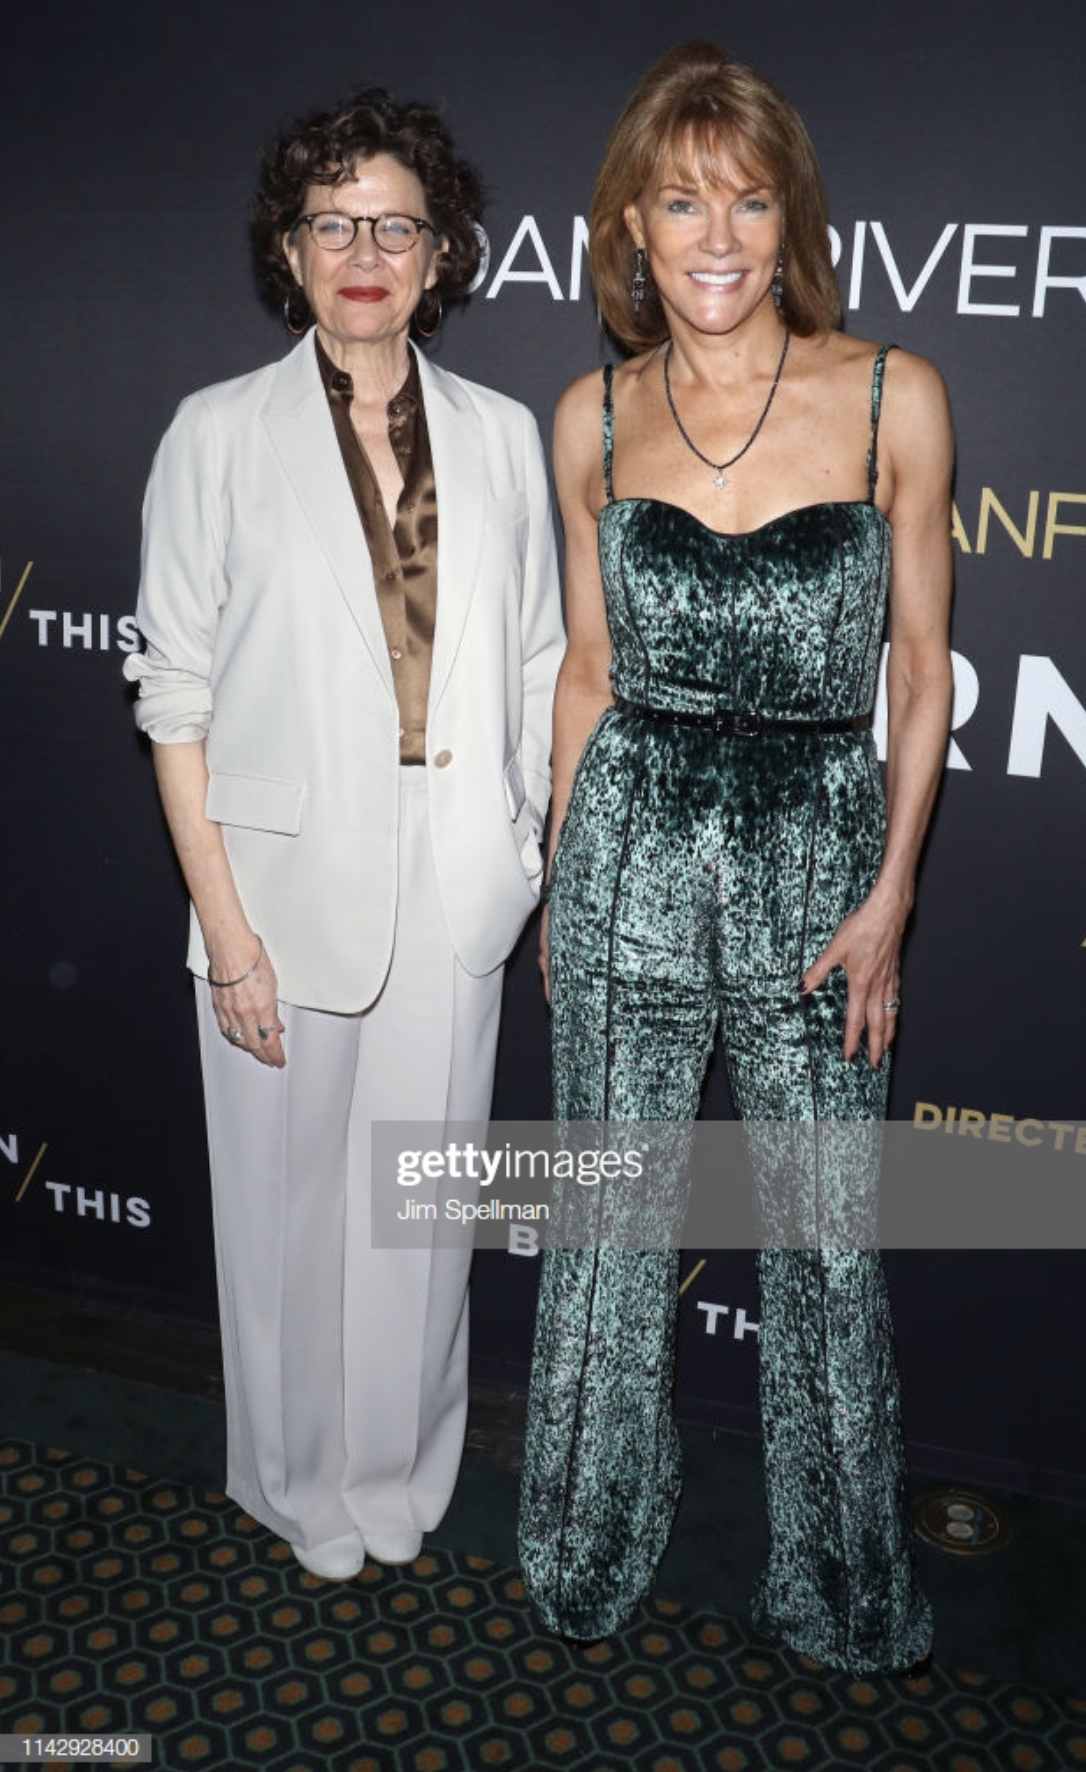 Carolyn McCormick with Annette Bening at BURN THIS premiere